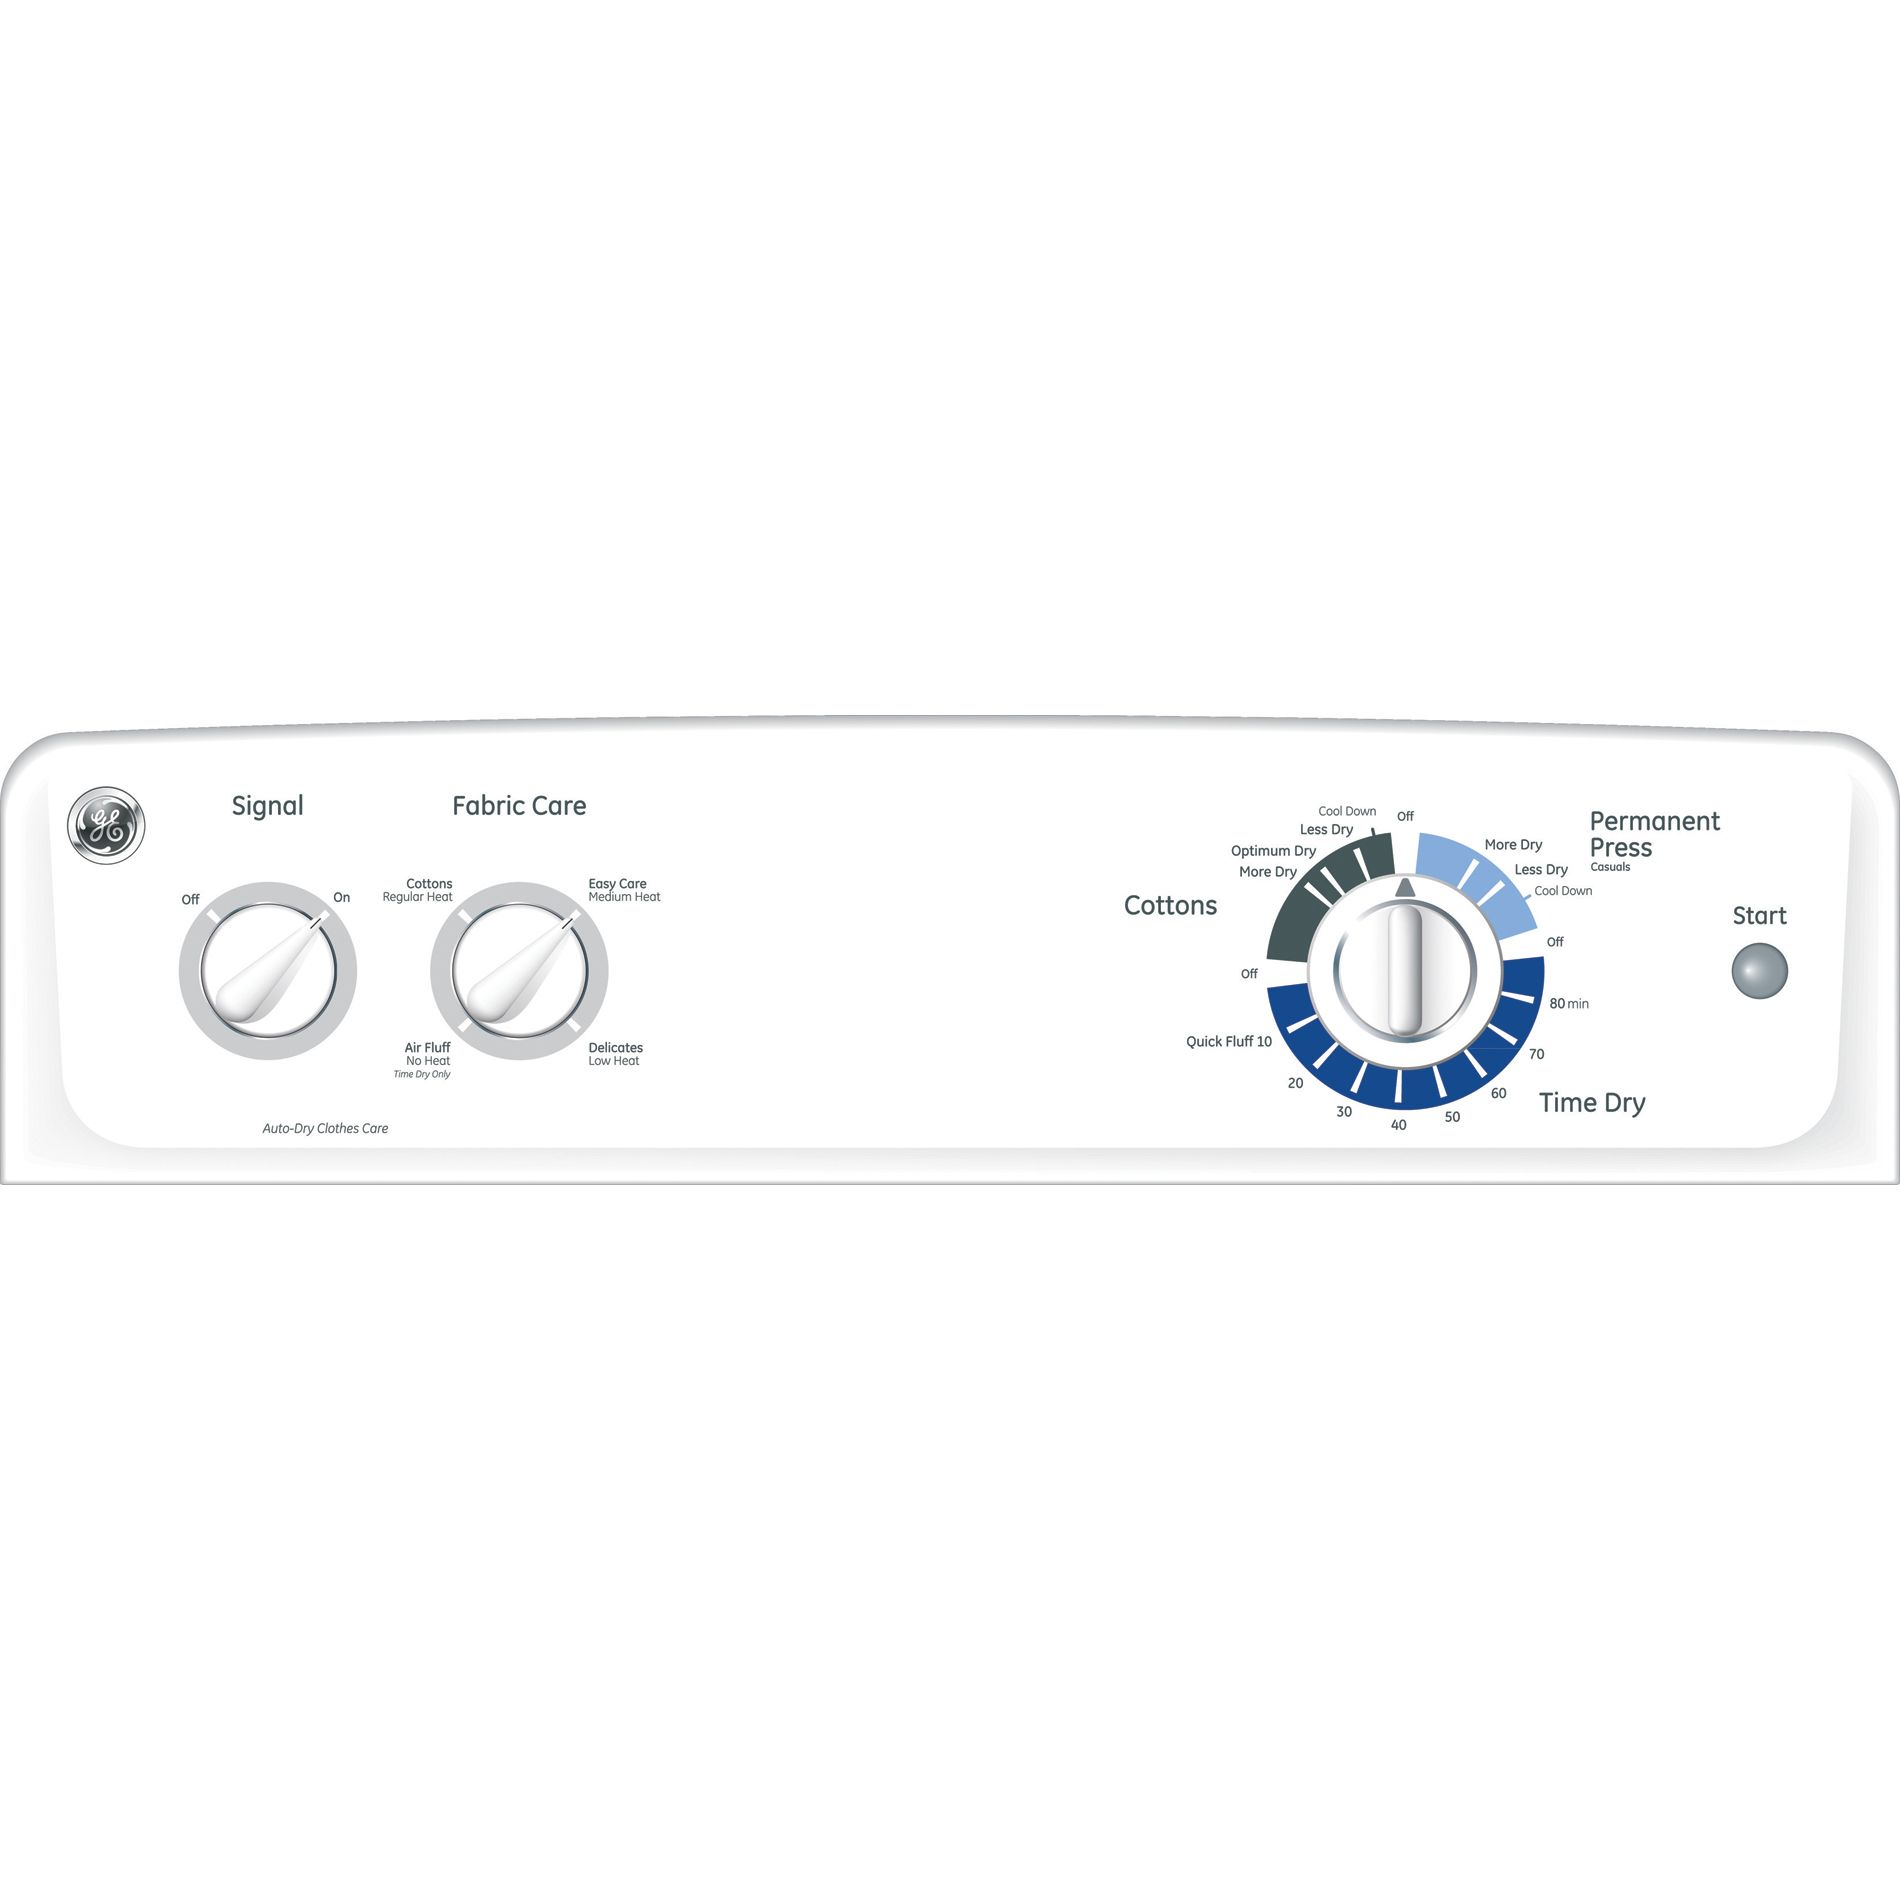 GE 6.8 cu. ft. Electric Dryer - White